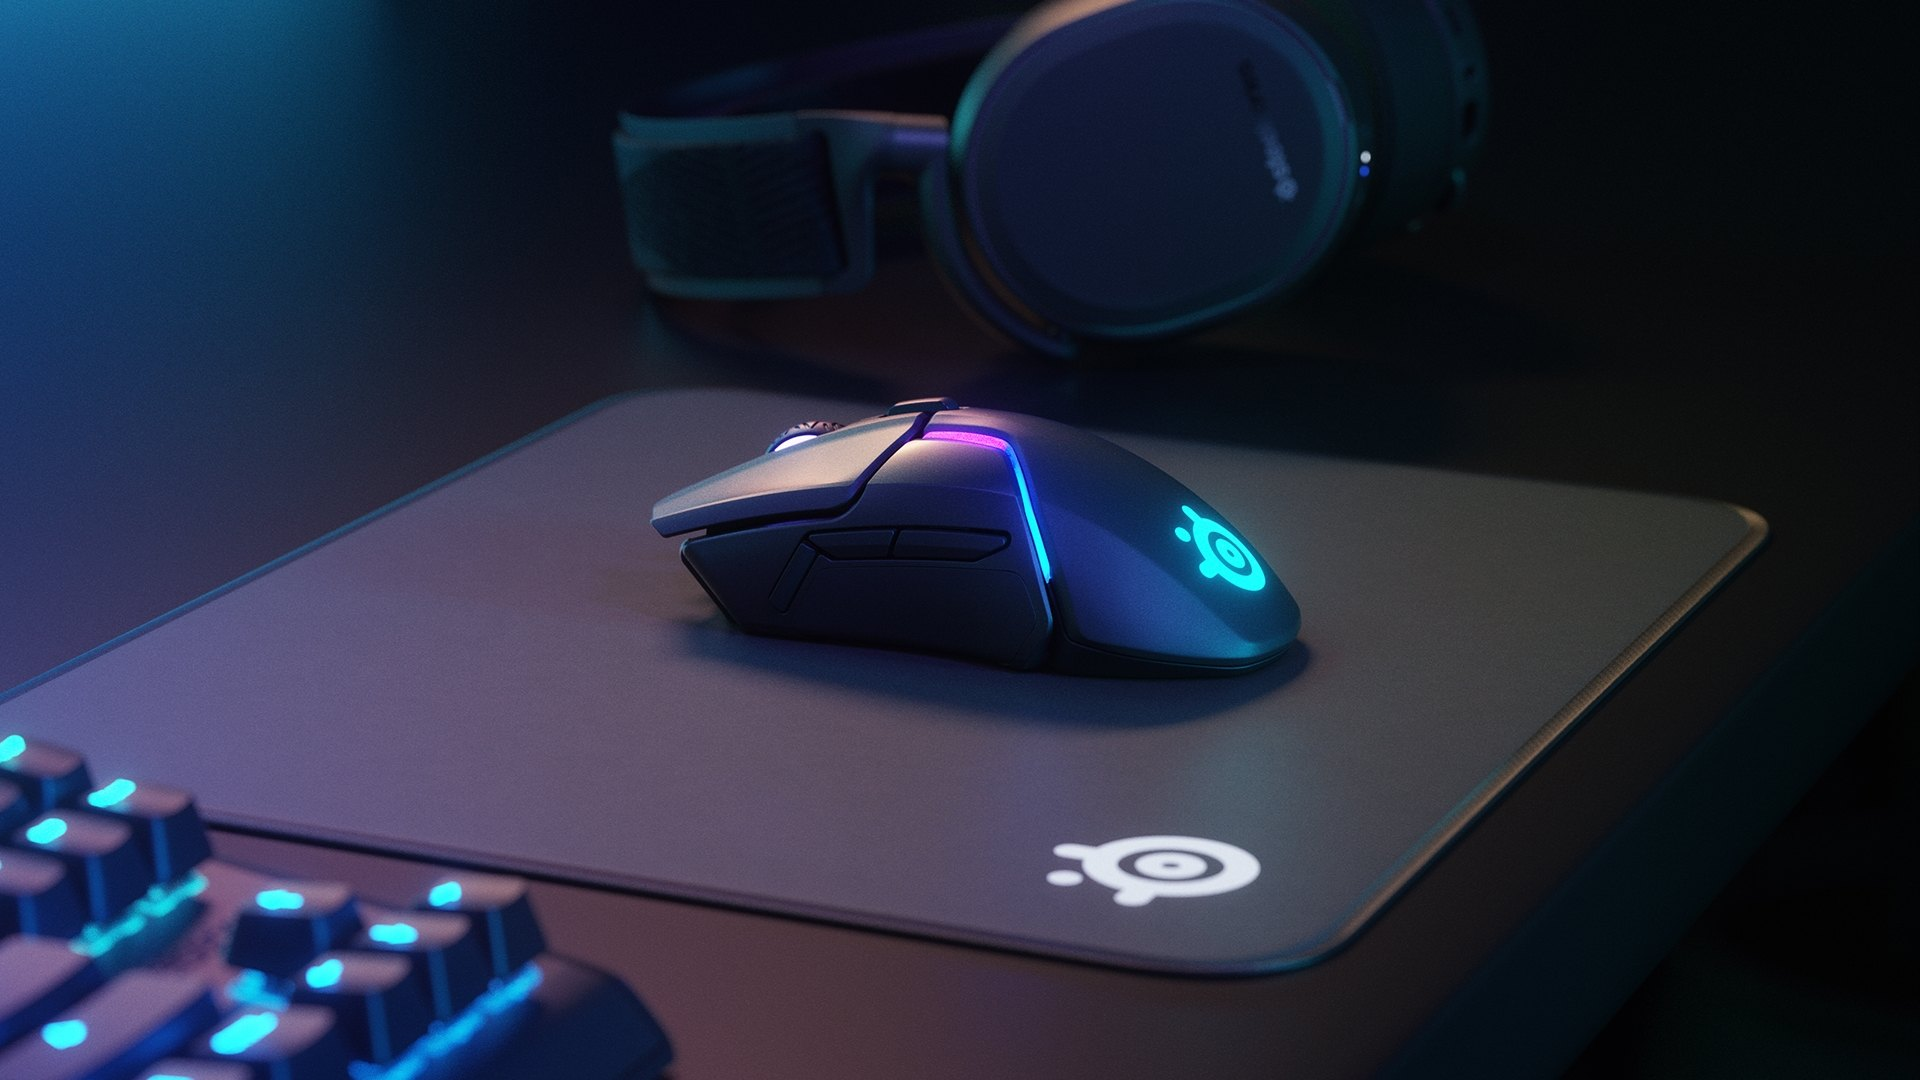 Get up to 33% off the SteelSeries Rival 650 wireless gaming mouse